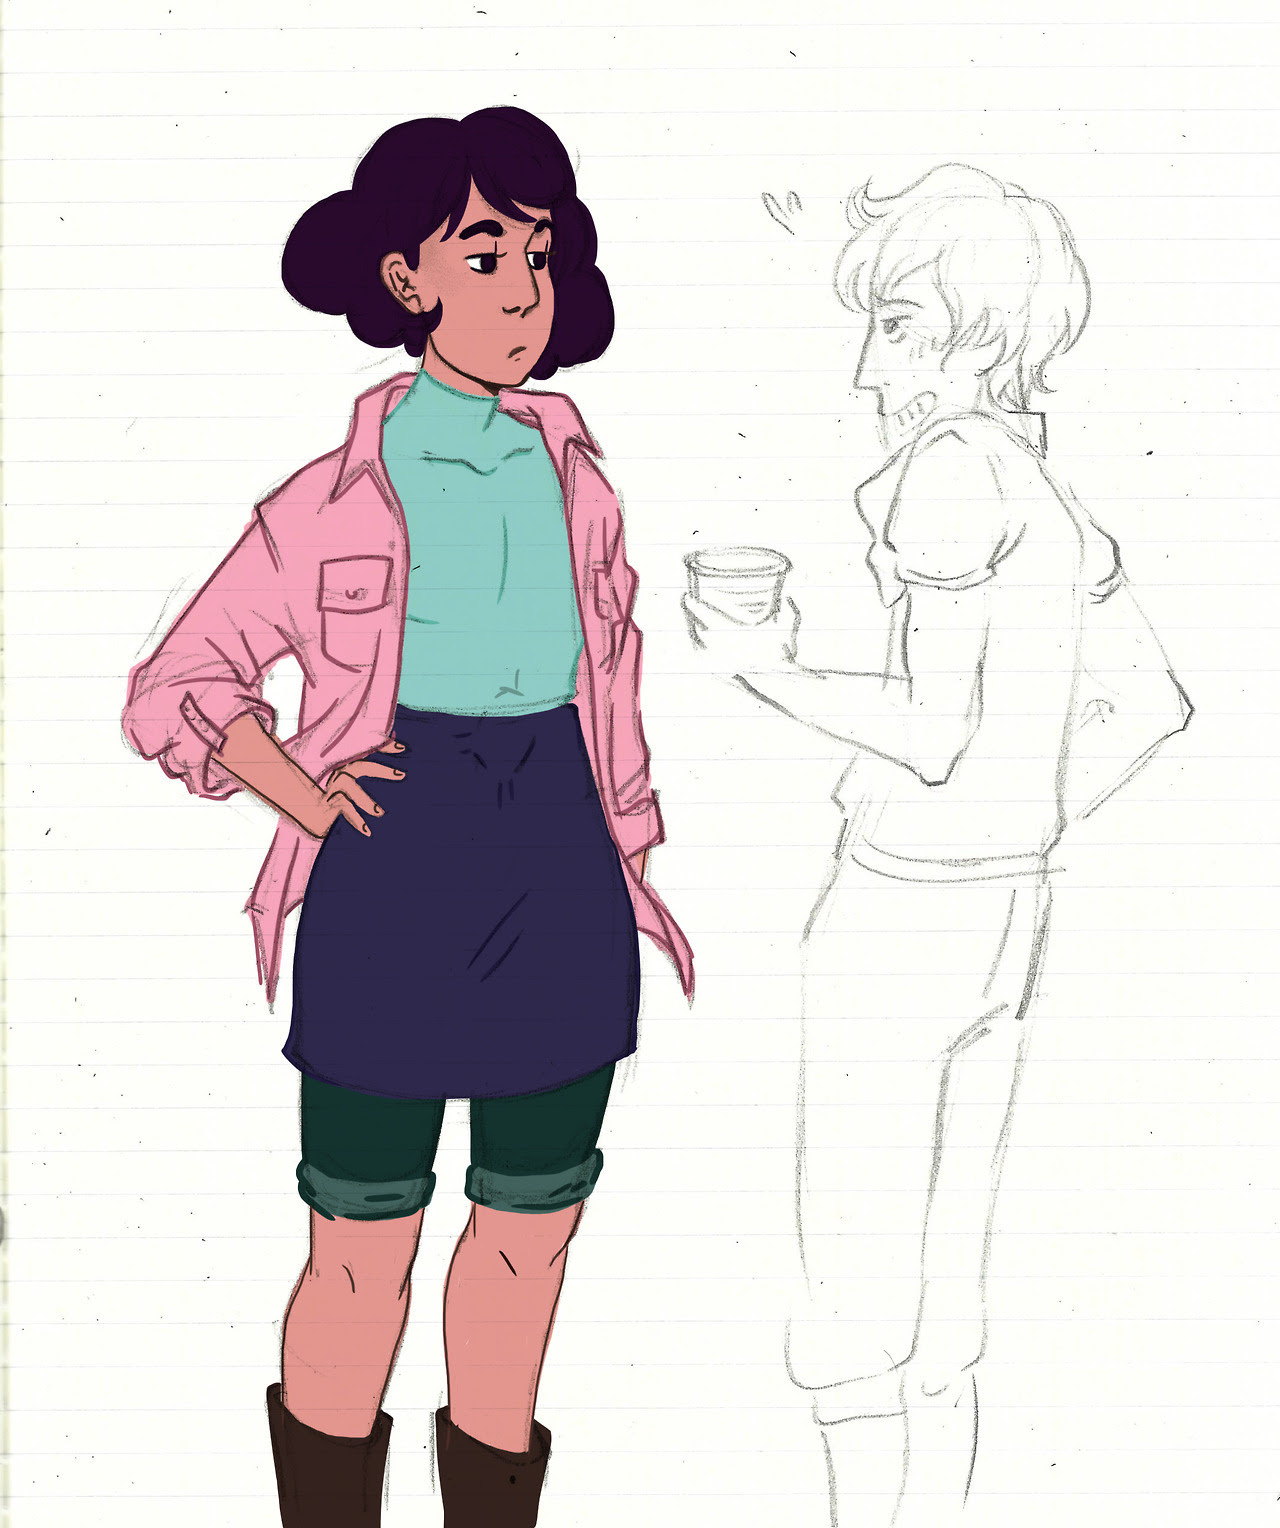 Can't wait to see Stevonnie with Connie's short hair 💕